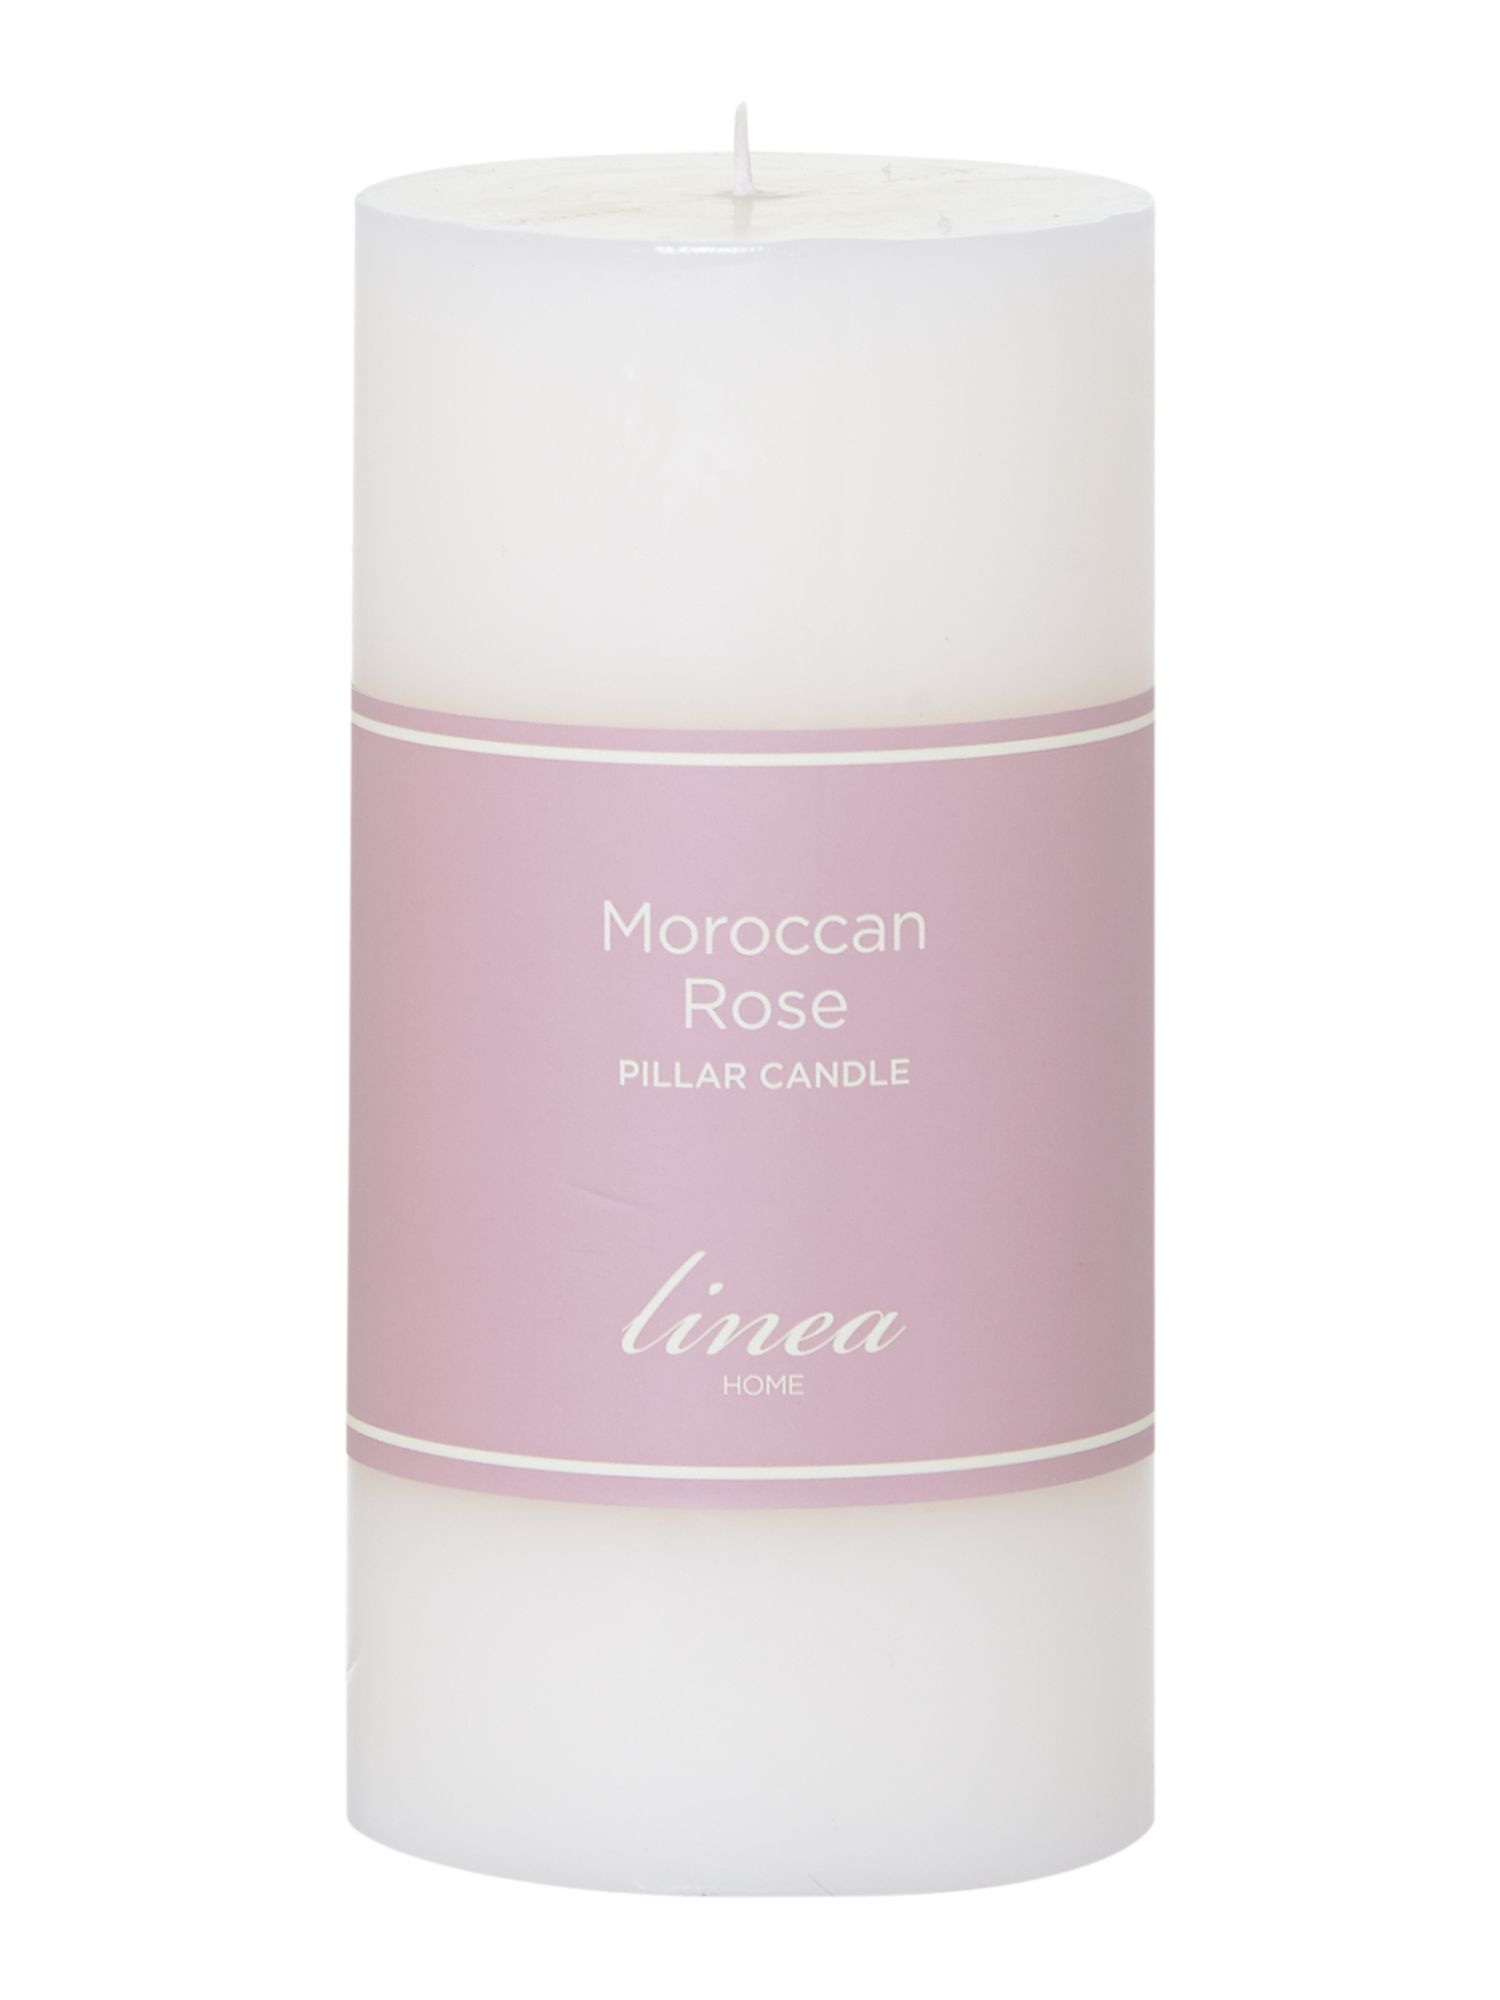 Moroccan rose pillar candle